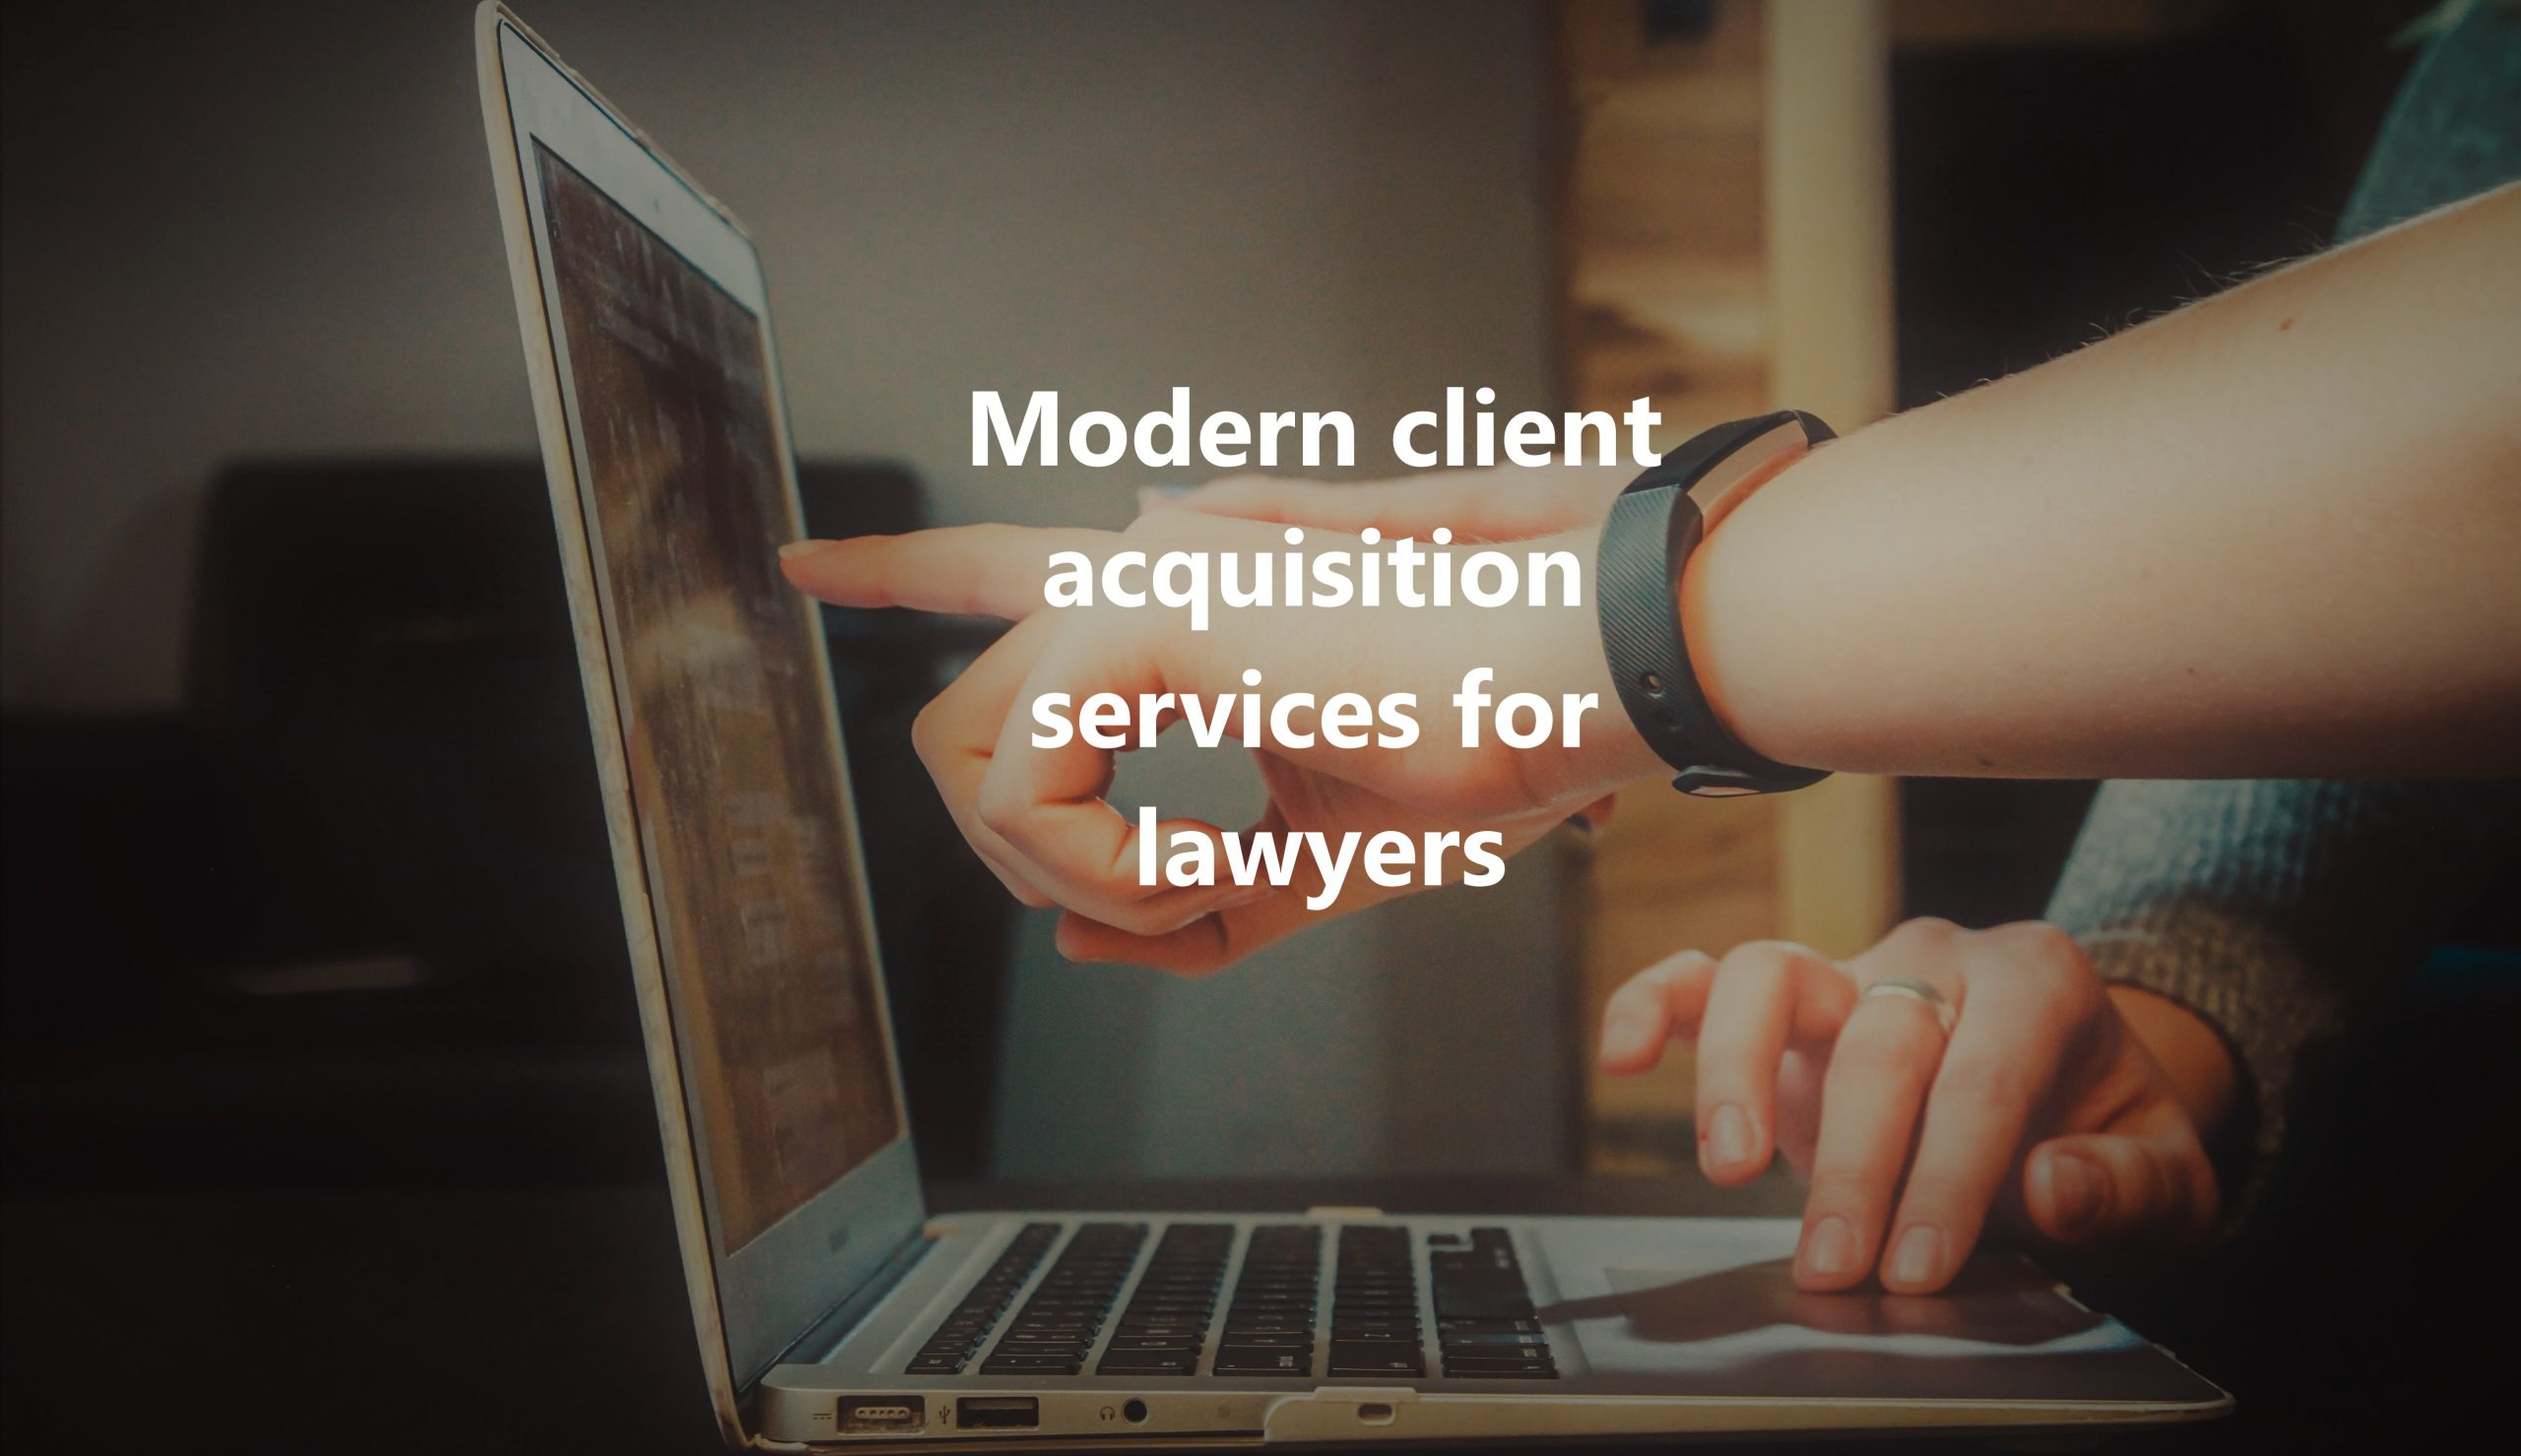 Modern client acquisition services for lawyers